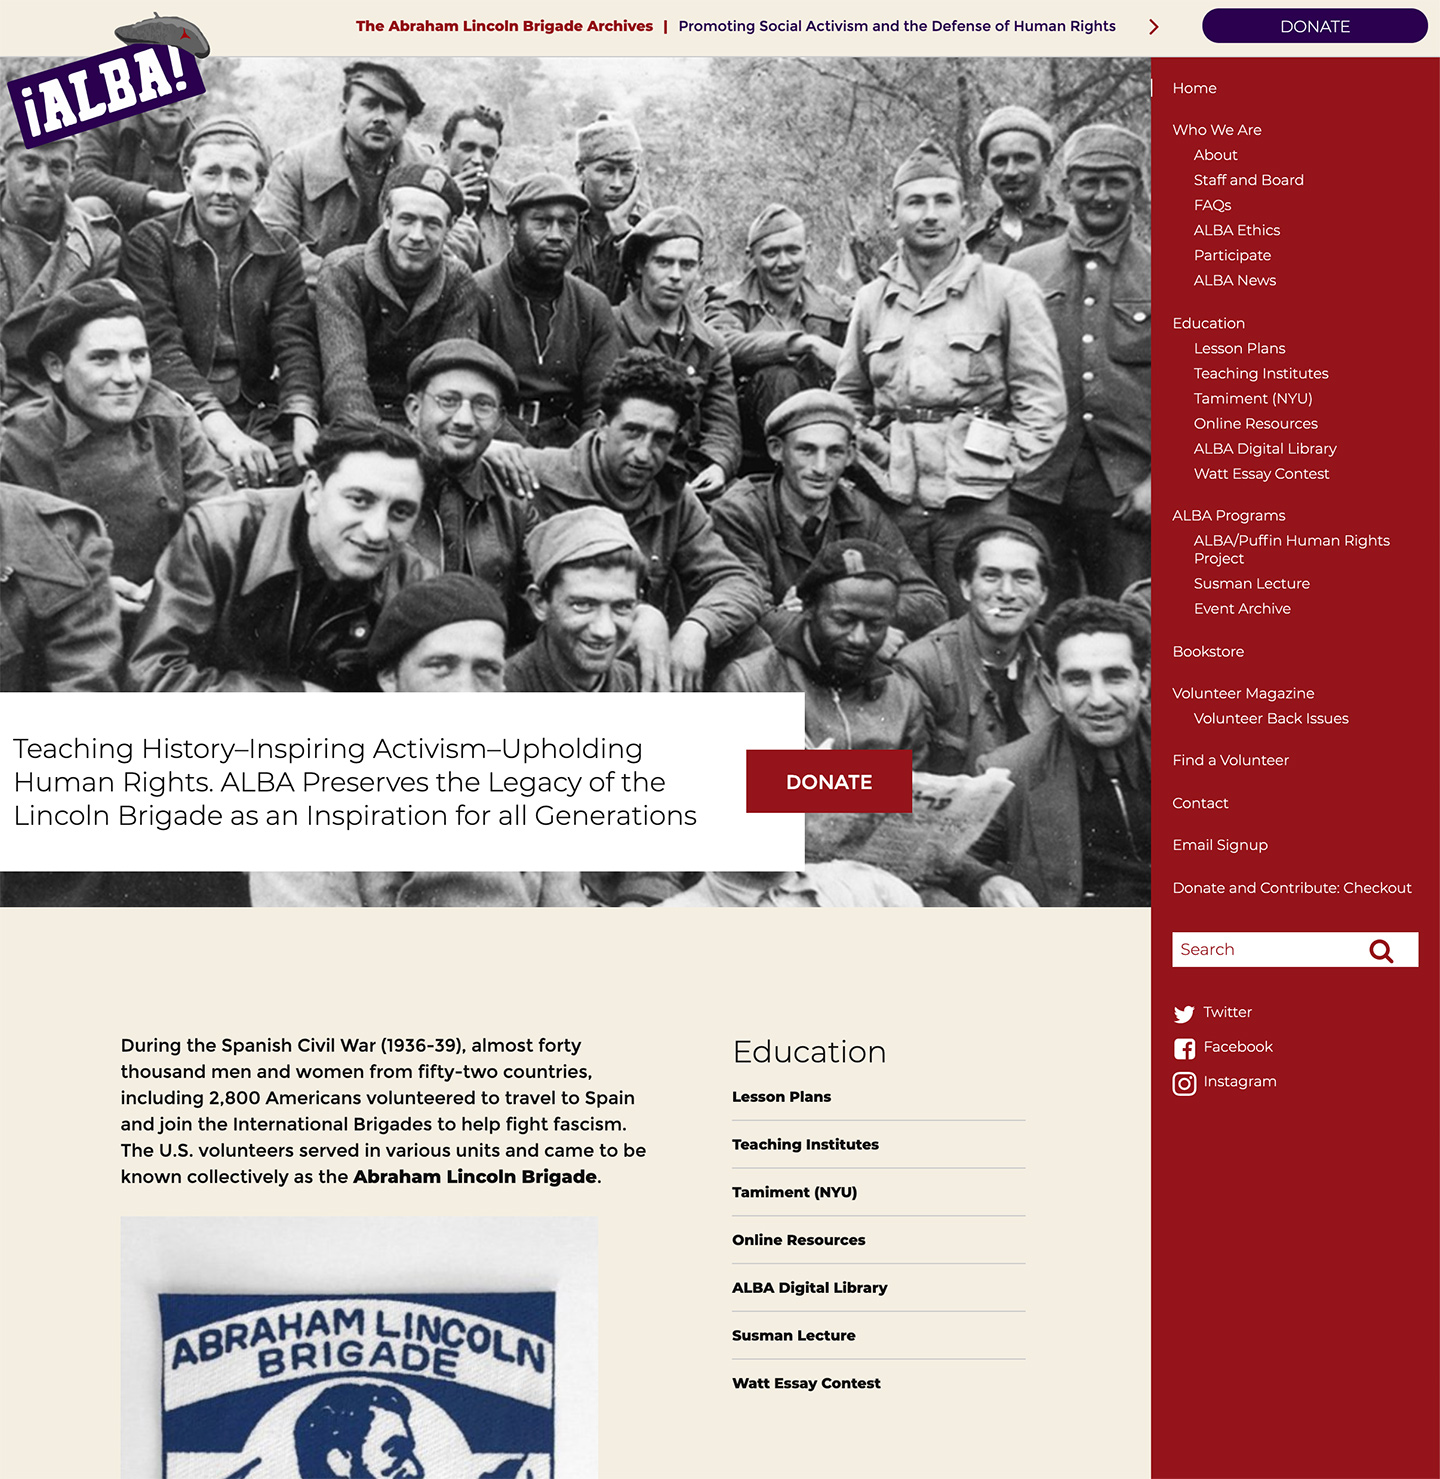 The Abraham Lincoln Brigade Archives (ALBA)